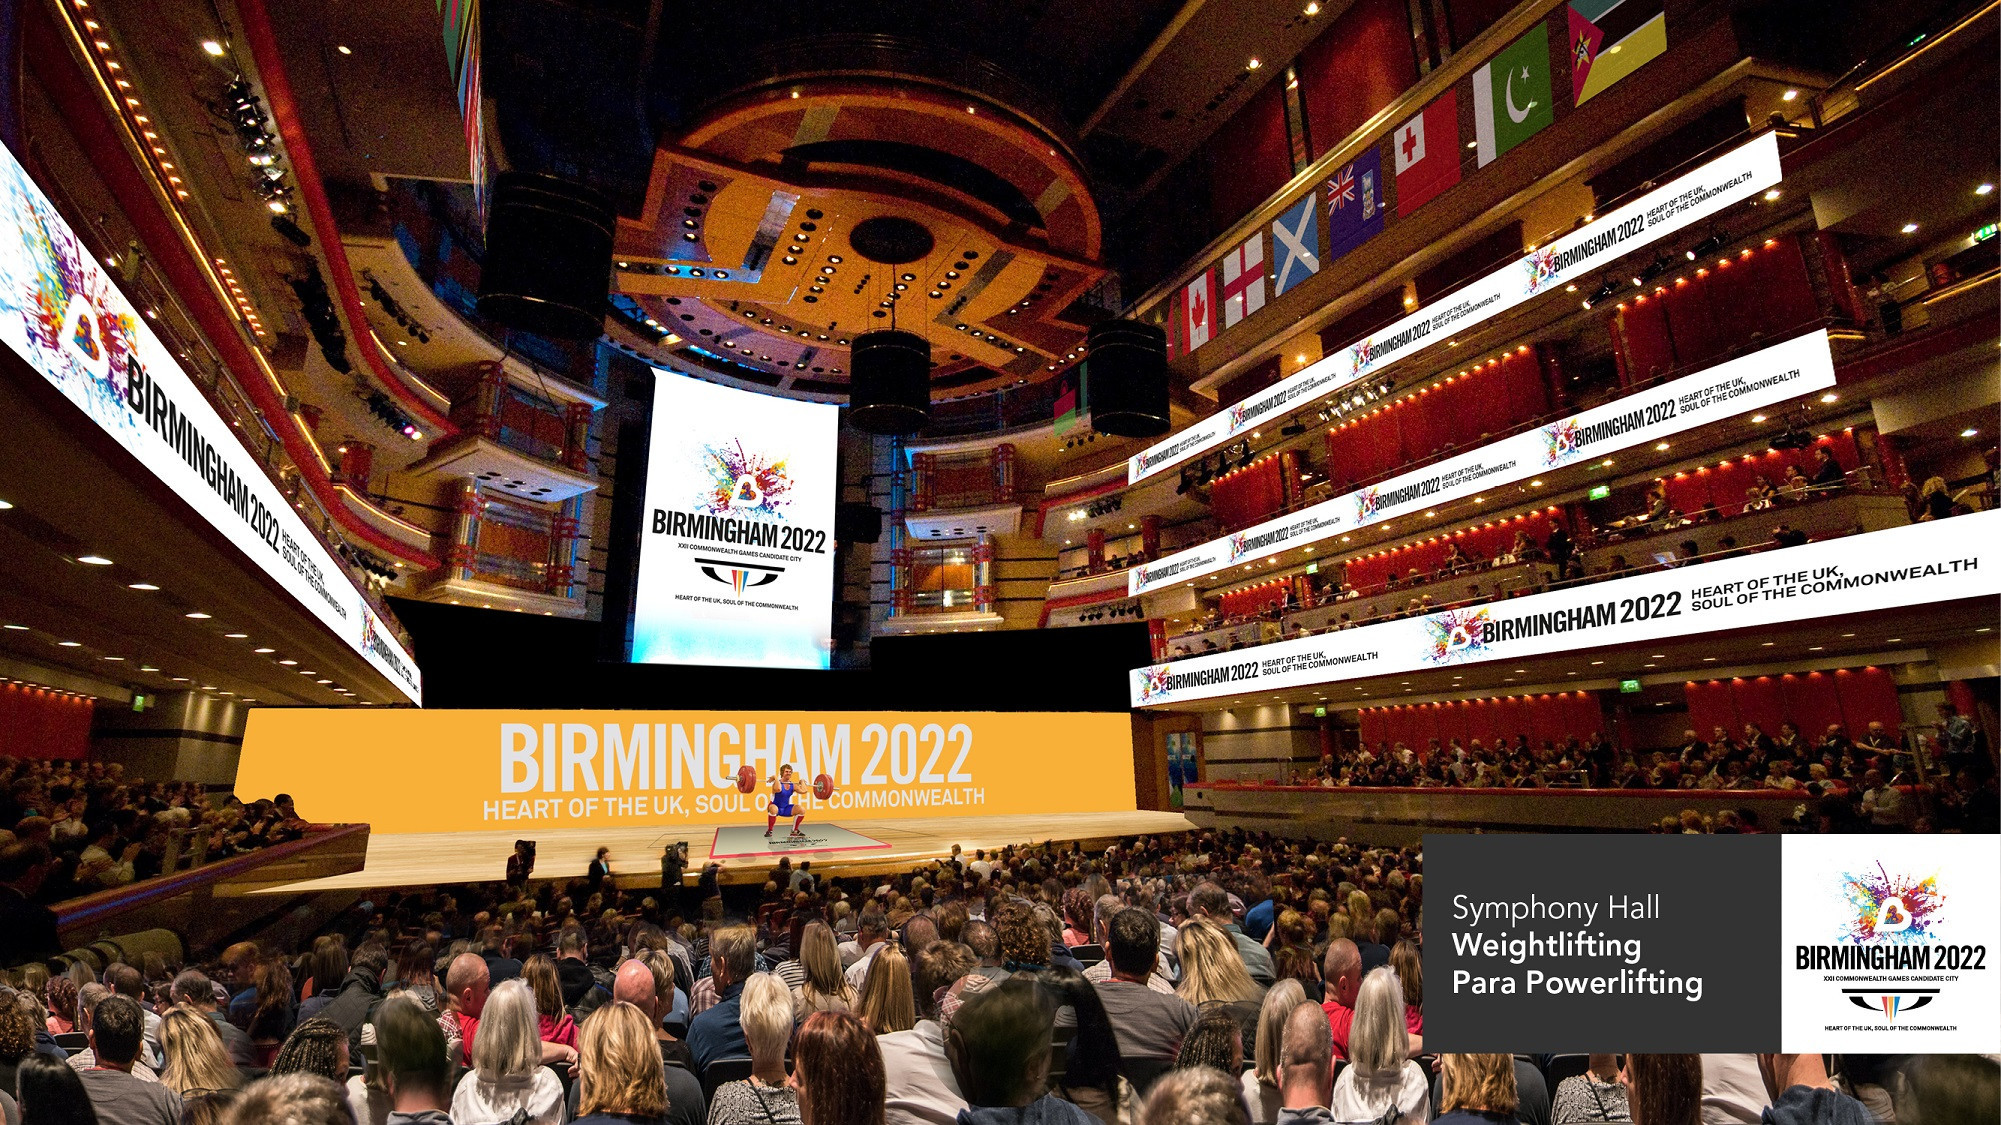 Birmingham will be officially announced as the host city of the 2022 Commonwealth Games ©Birmingham 2022